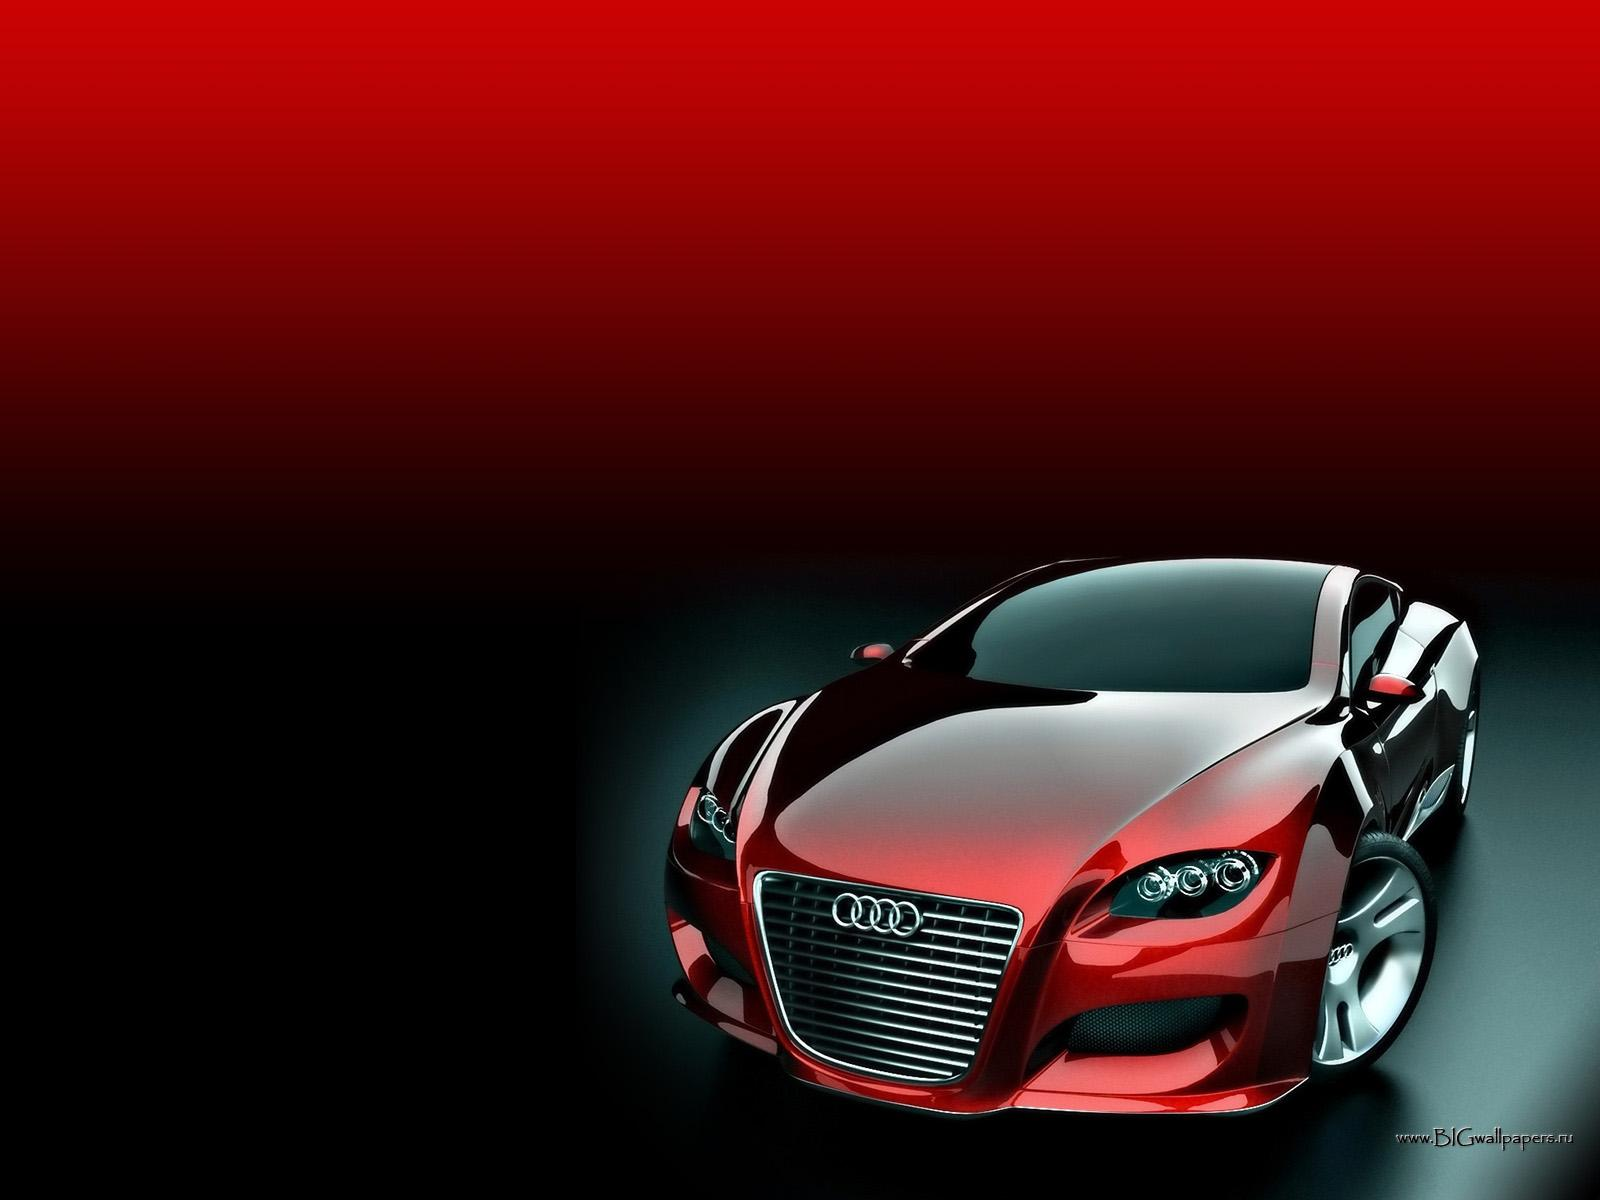 Car Backgrounds Pictures Wallpaper Cave